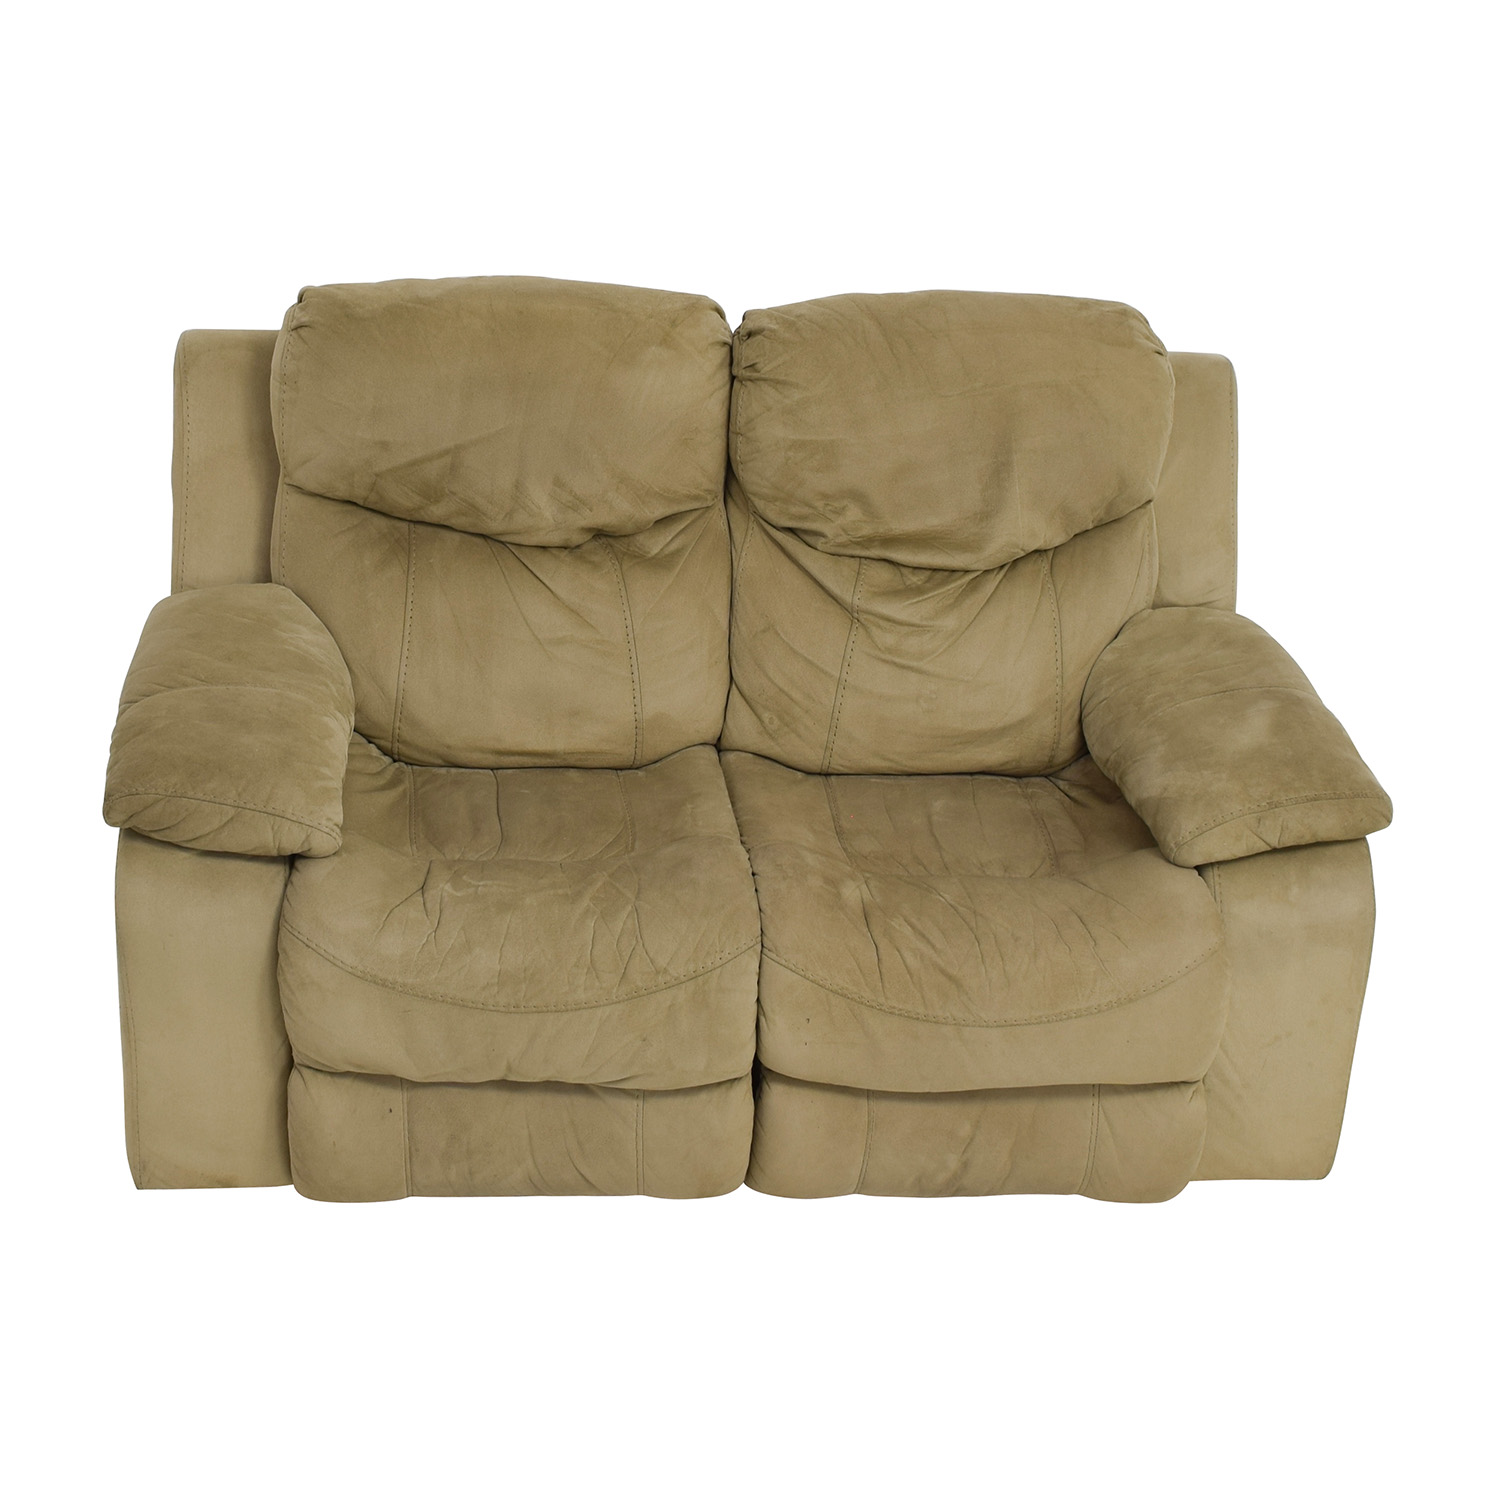 shop Bobu0027s Furniture Grey Dual Reclining Loveseat Bobu0027s Furniture Sofas  sc 1 st  Furnishare & 41% OFF - Acme Acme Black Leather Reclining Loveseat / Sofas islam-shia.org